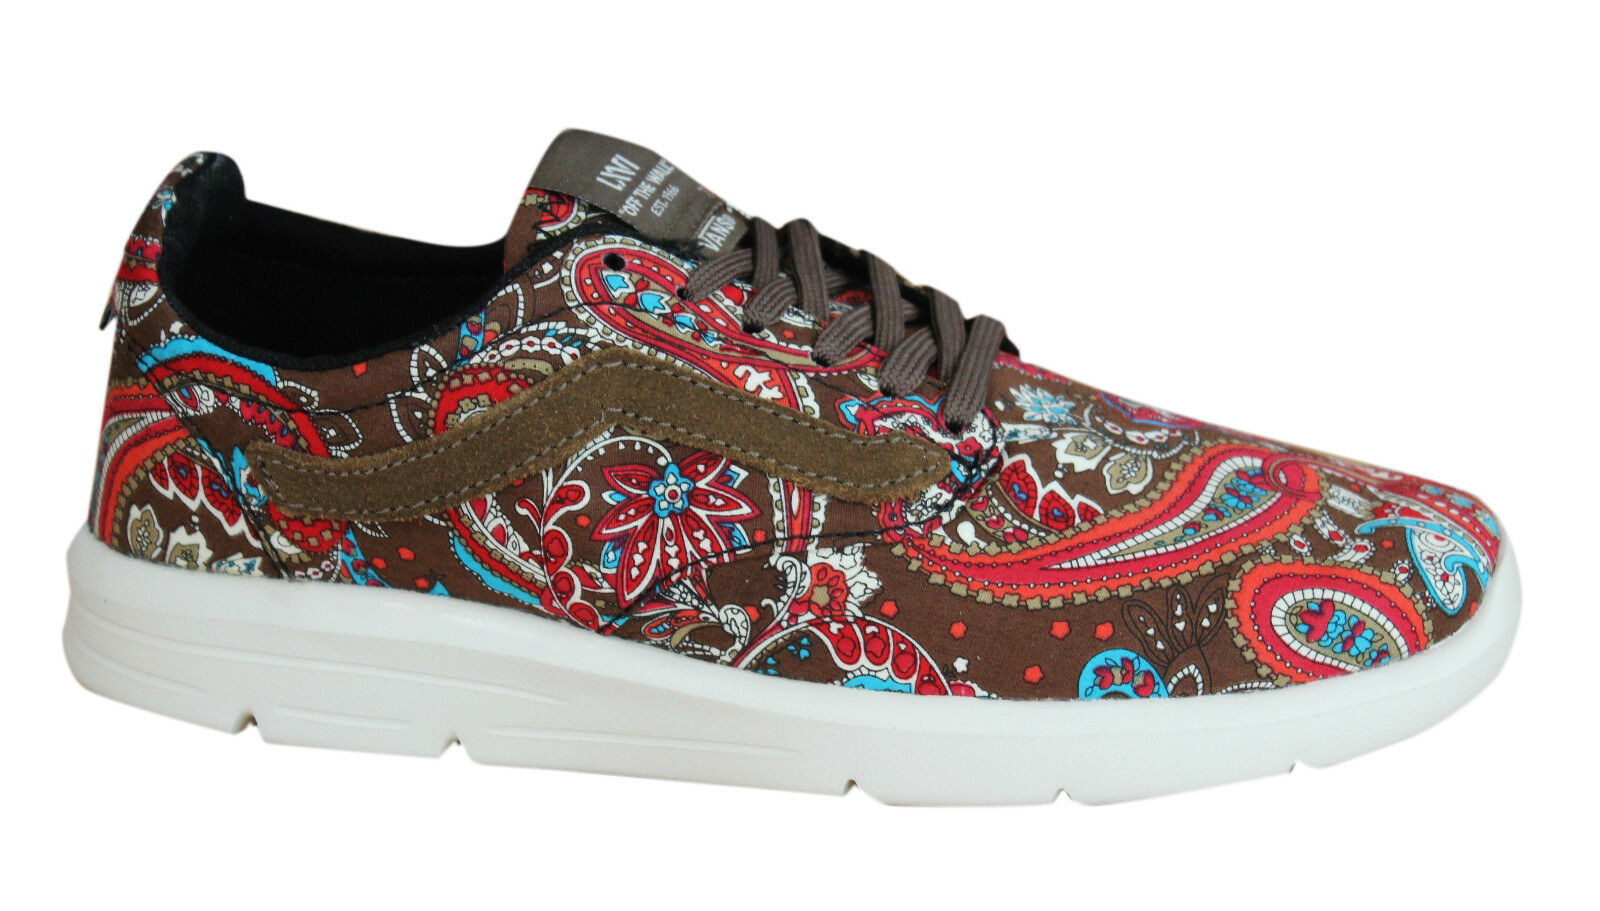 Vans Mens Iso 1.5 Paisley Olive Mens Vans Trainers Lace Up Shoes Textile XB8I2U D37 88498e